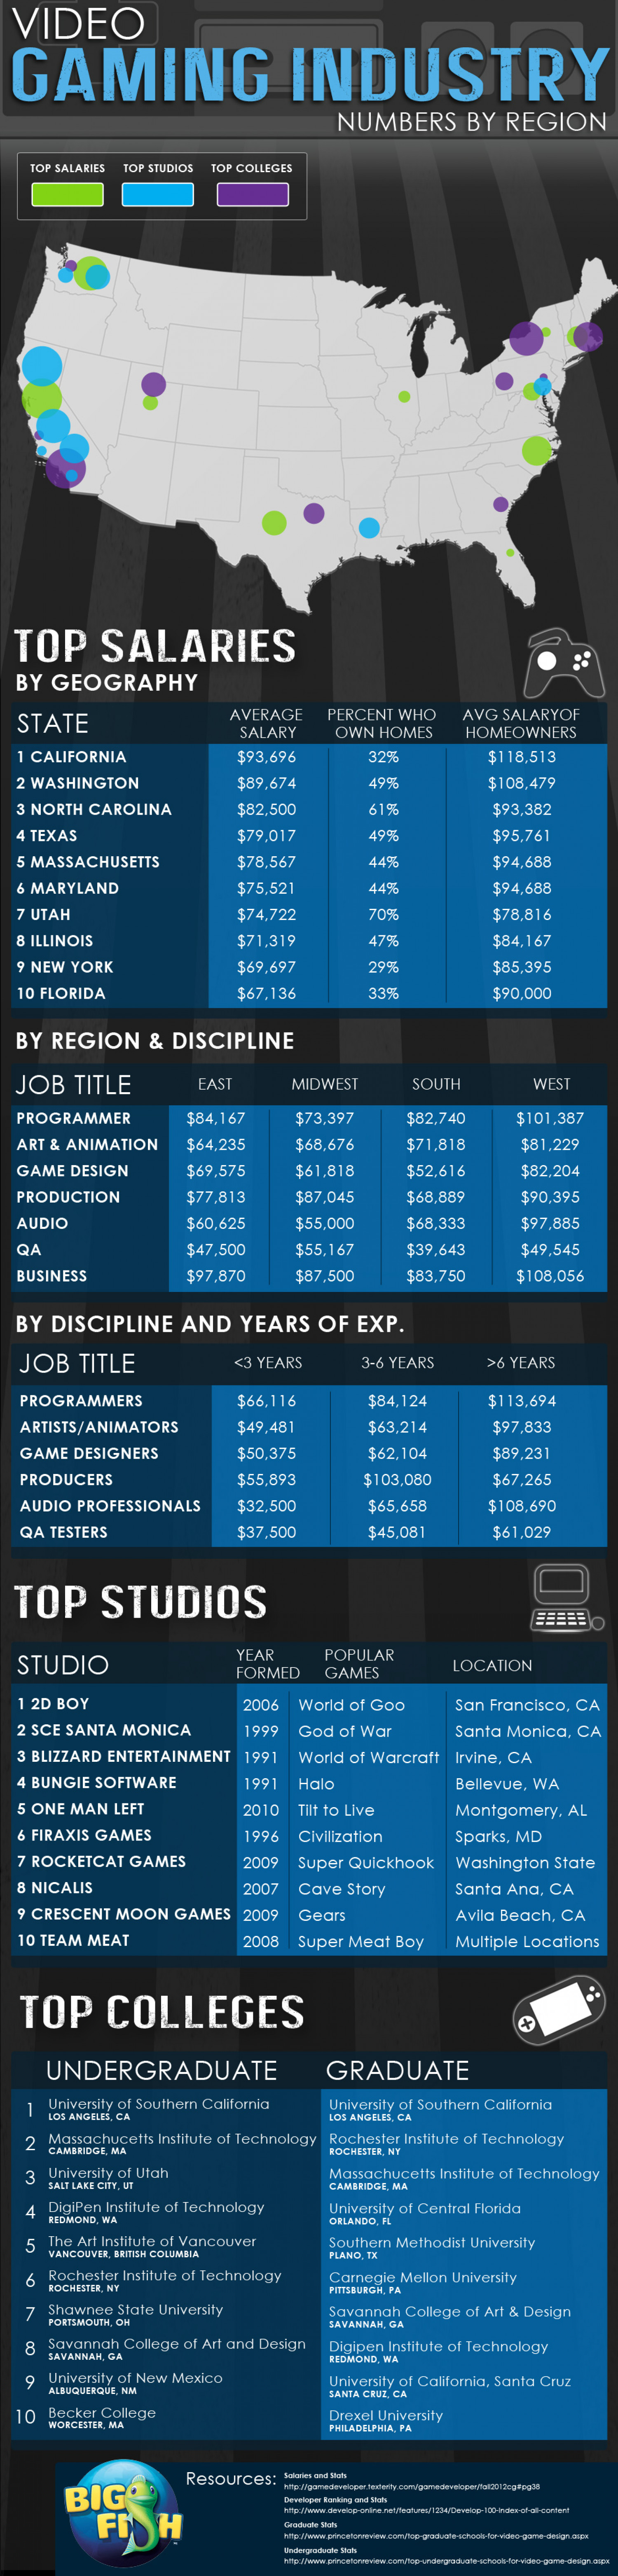 Video Gaming Industry Numbers by Region Infographic